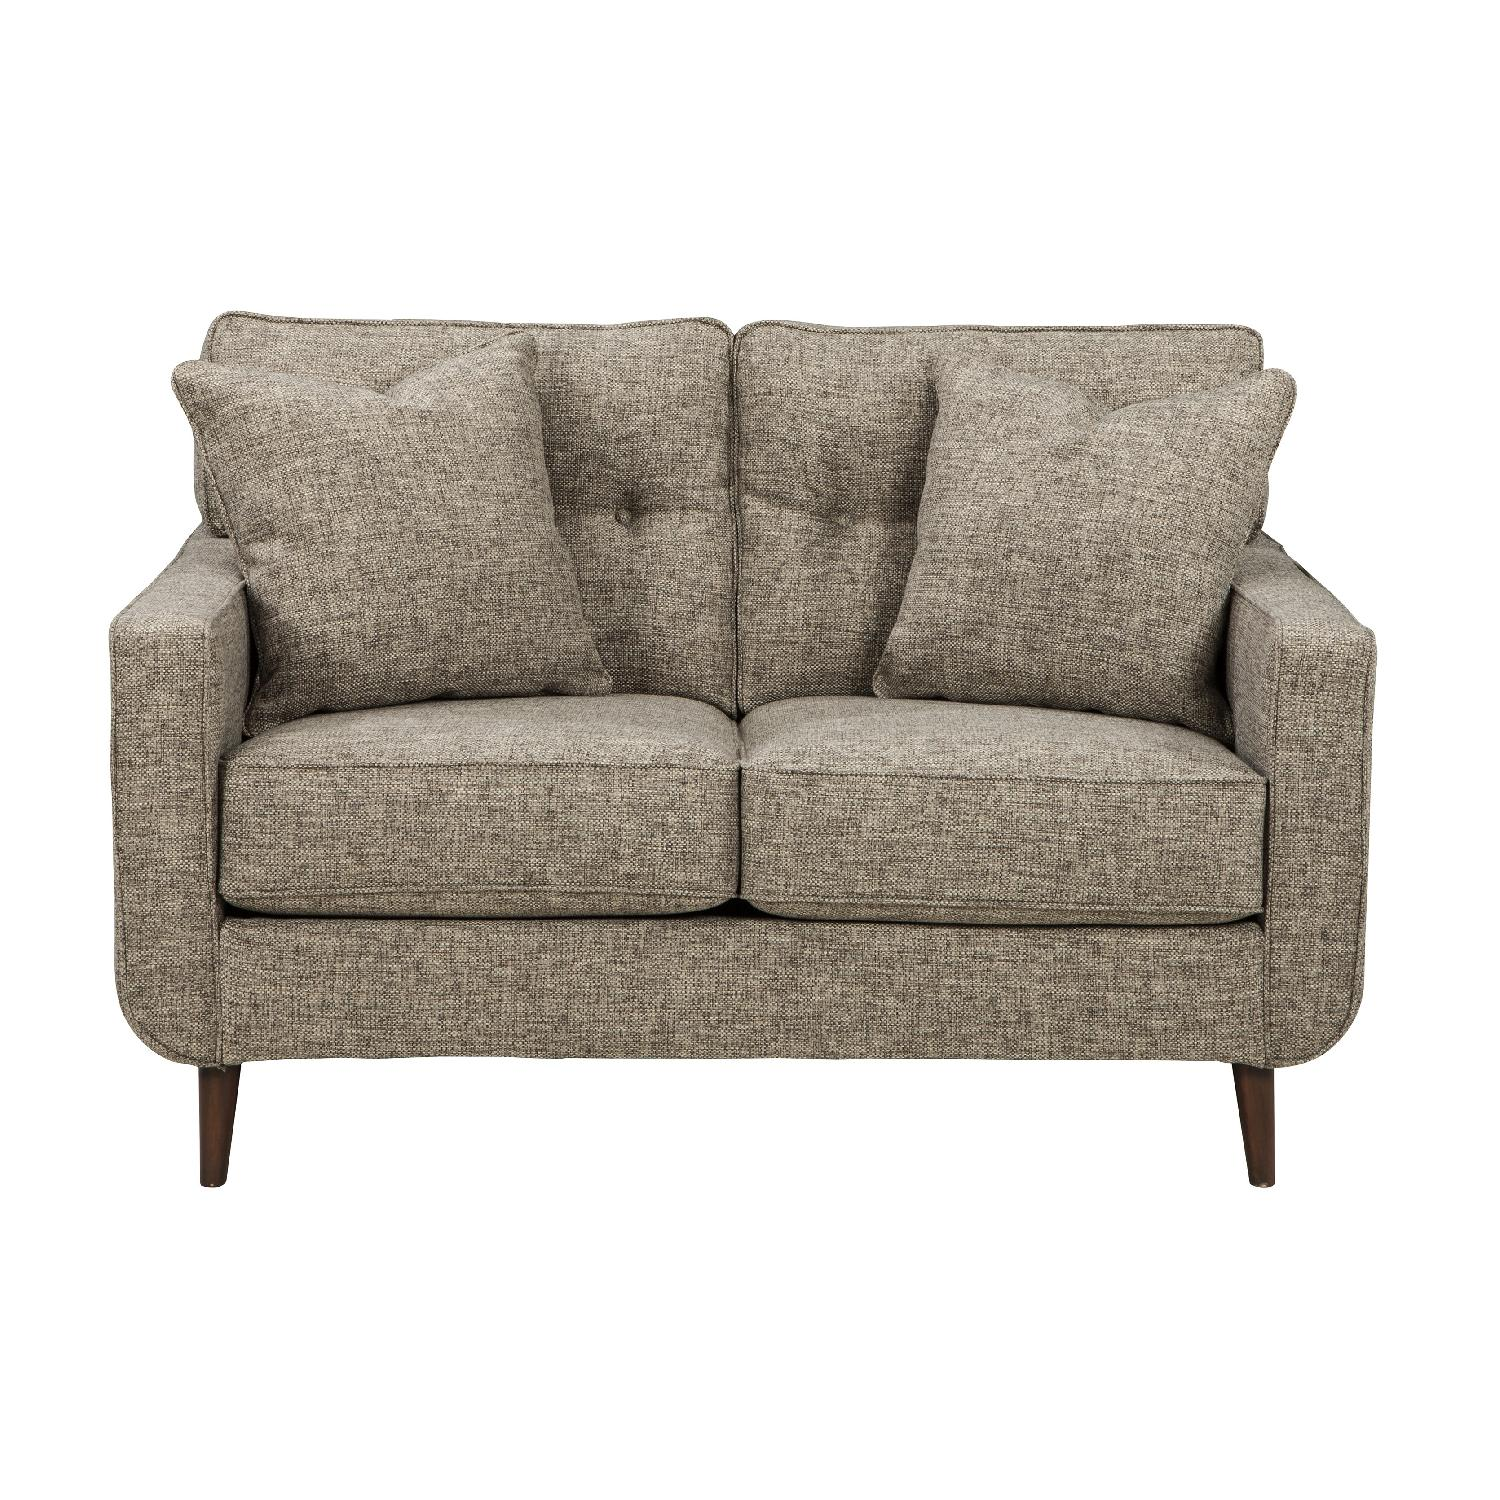 Ashley Chento Contemporary Loveseat in Jute Color